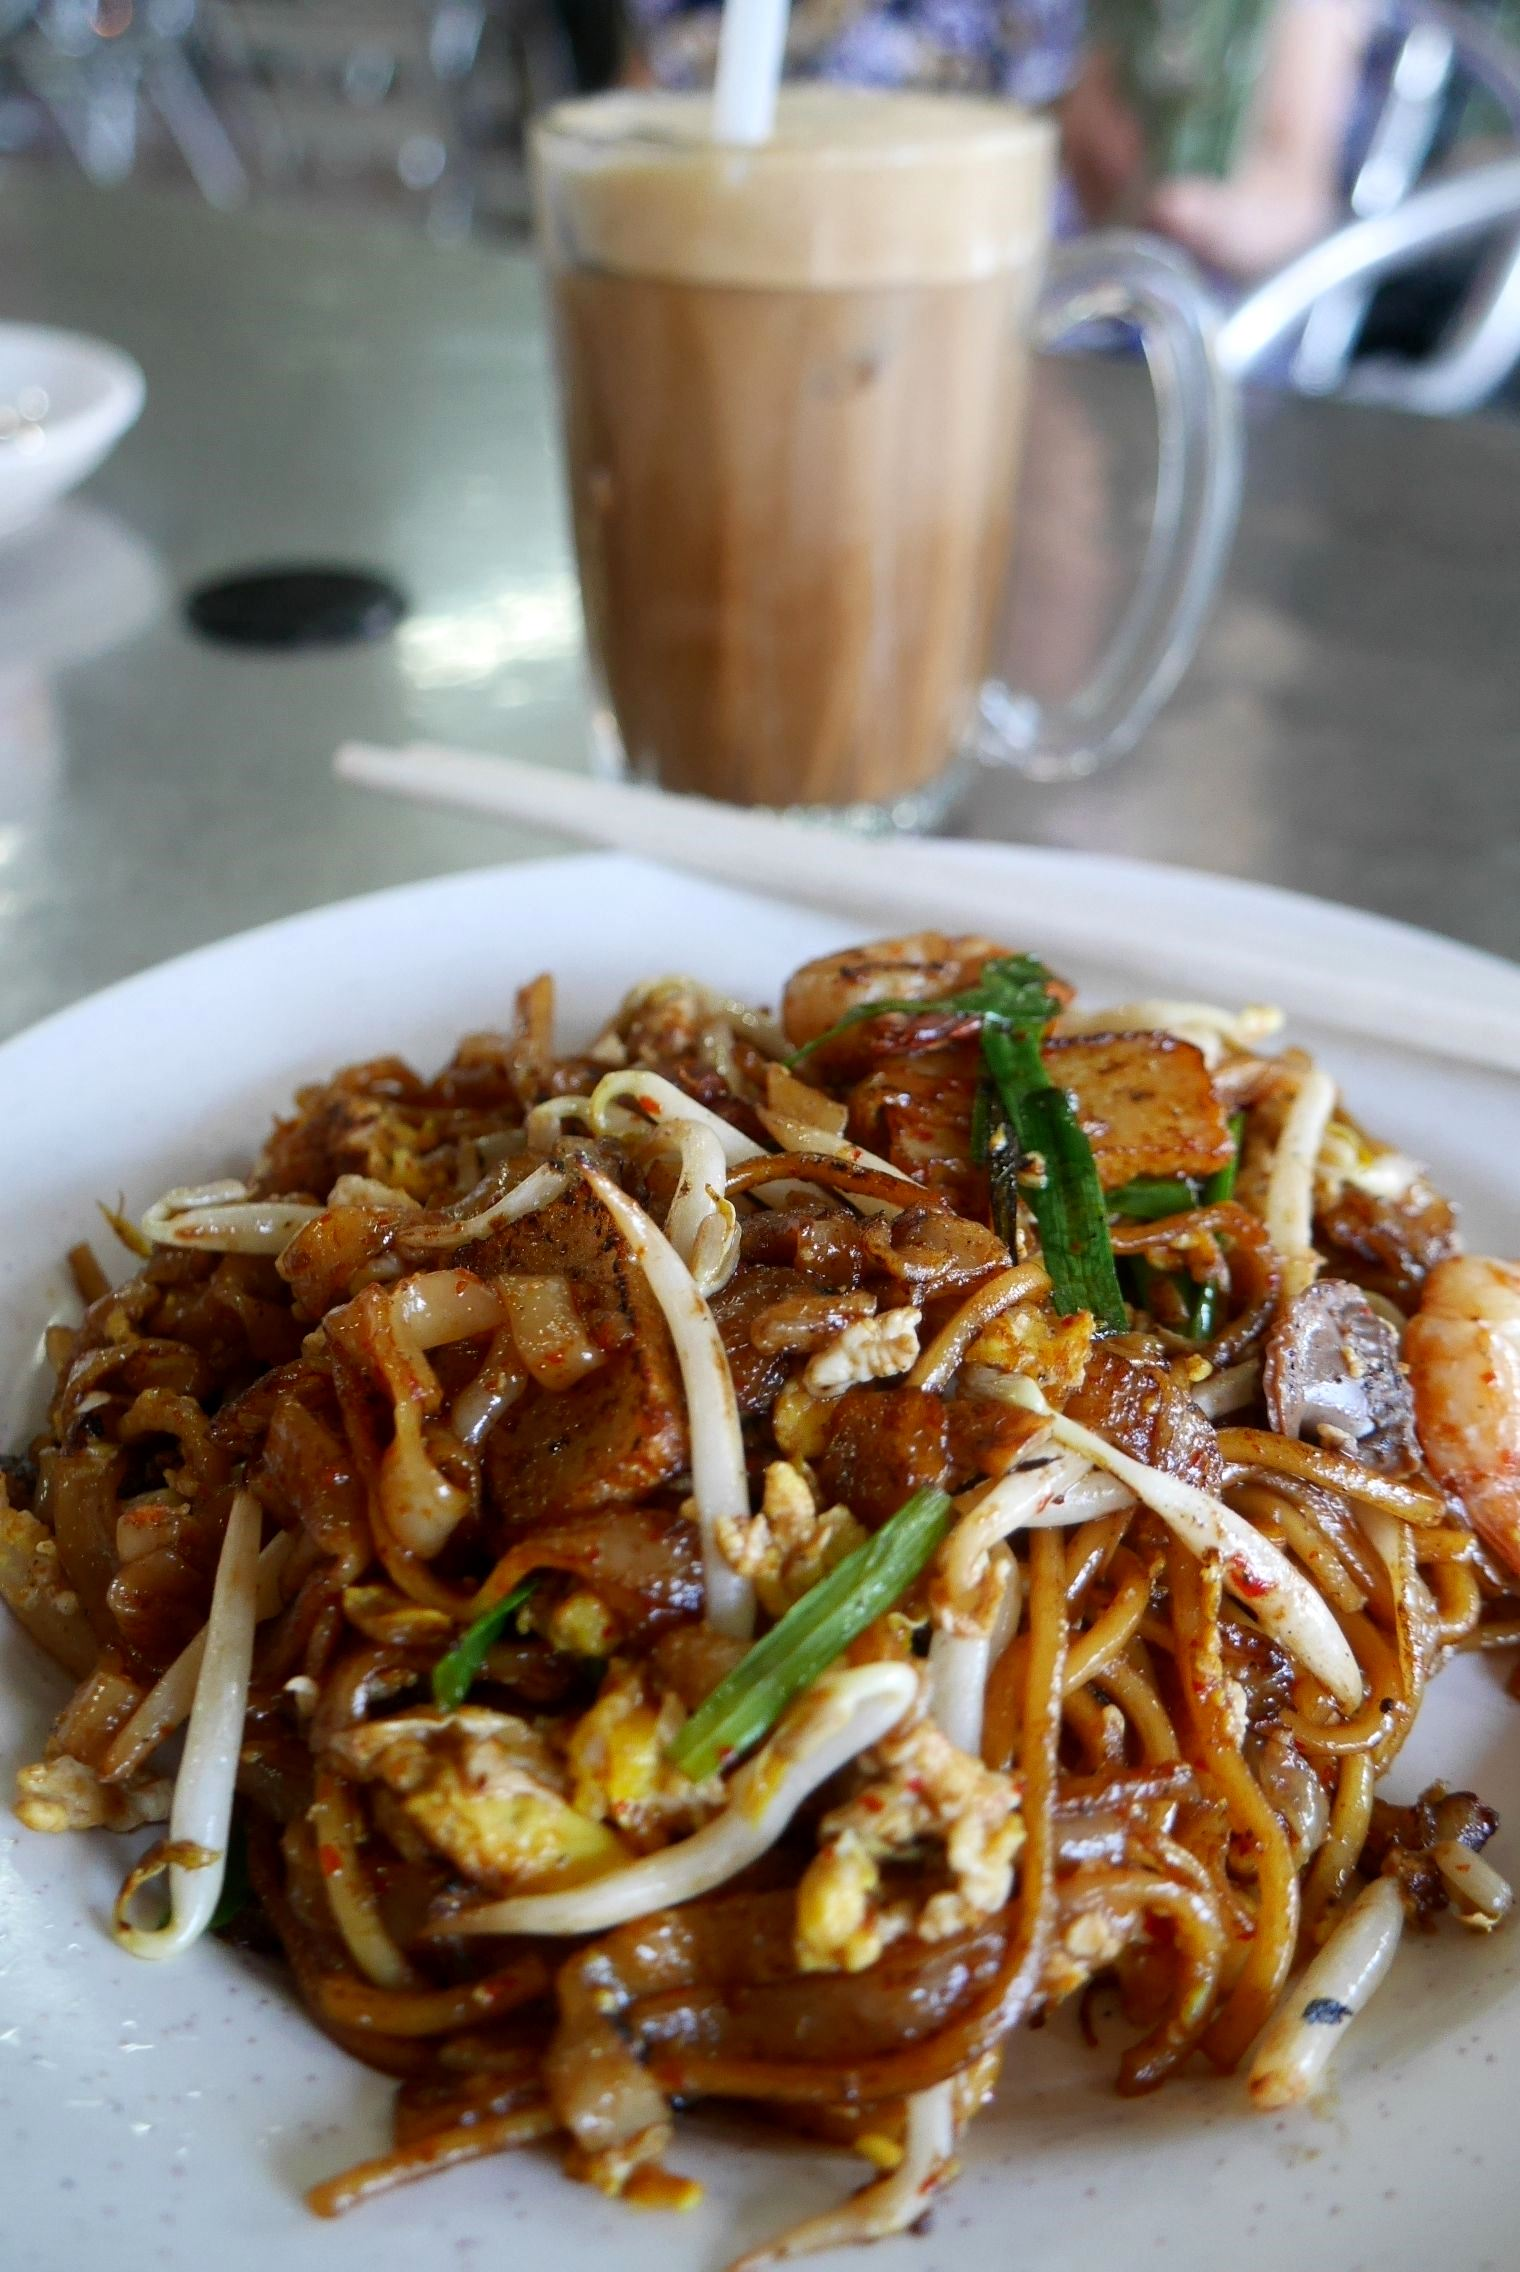 Char kway teow RM7 / A$2.30